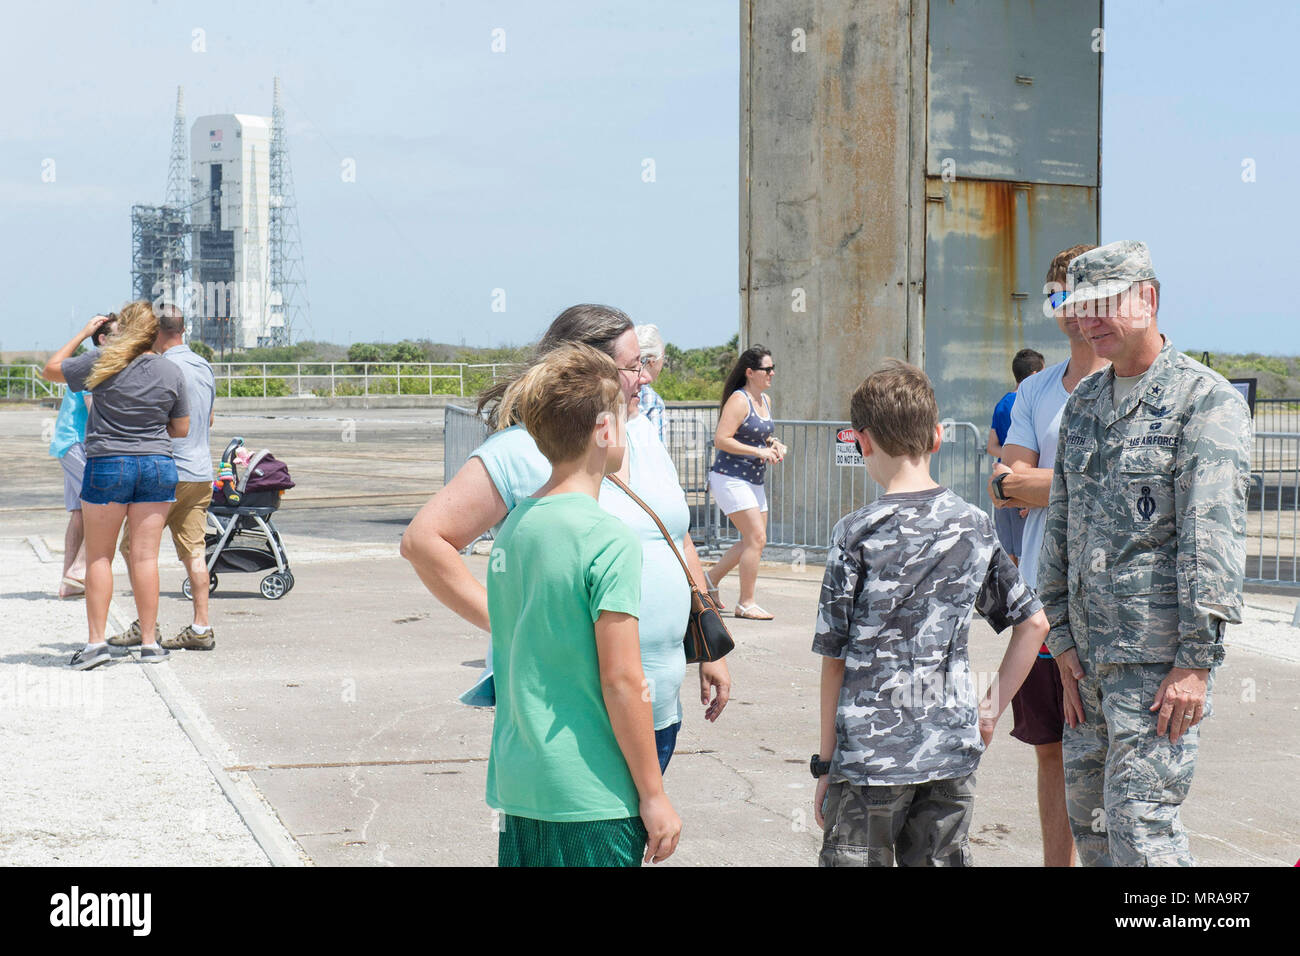 Brig. Gen. Wayne Monteith, 45th Space Wing commander, speaks with Airmen and their family members at the Apollo 1 pad during the 2017 Cape Family Day, April, 29, 2017, at Cape Canaveral Air Force Station, Fla. The tour route concluded at the Apollo 1 pad at Launch Complex 34 where visitors were able to tour the site of the tragedy, which claimed the lives of three American astronauts. (U.S. Air Force photo by Phil Sunkel) - Stock Image